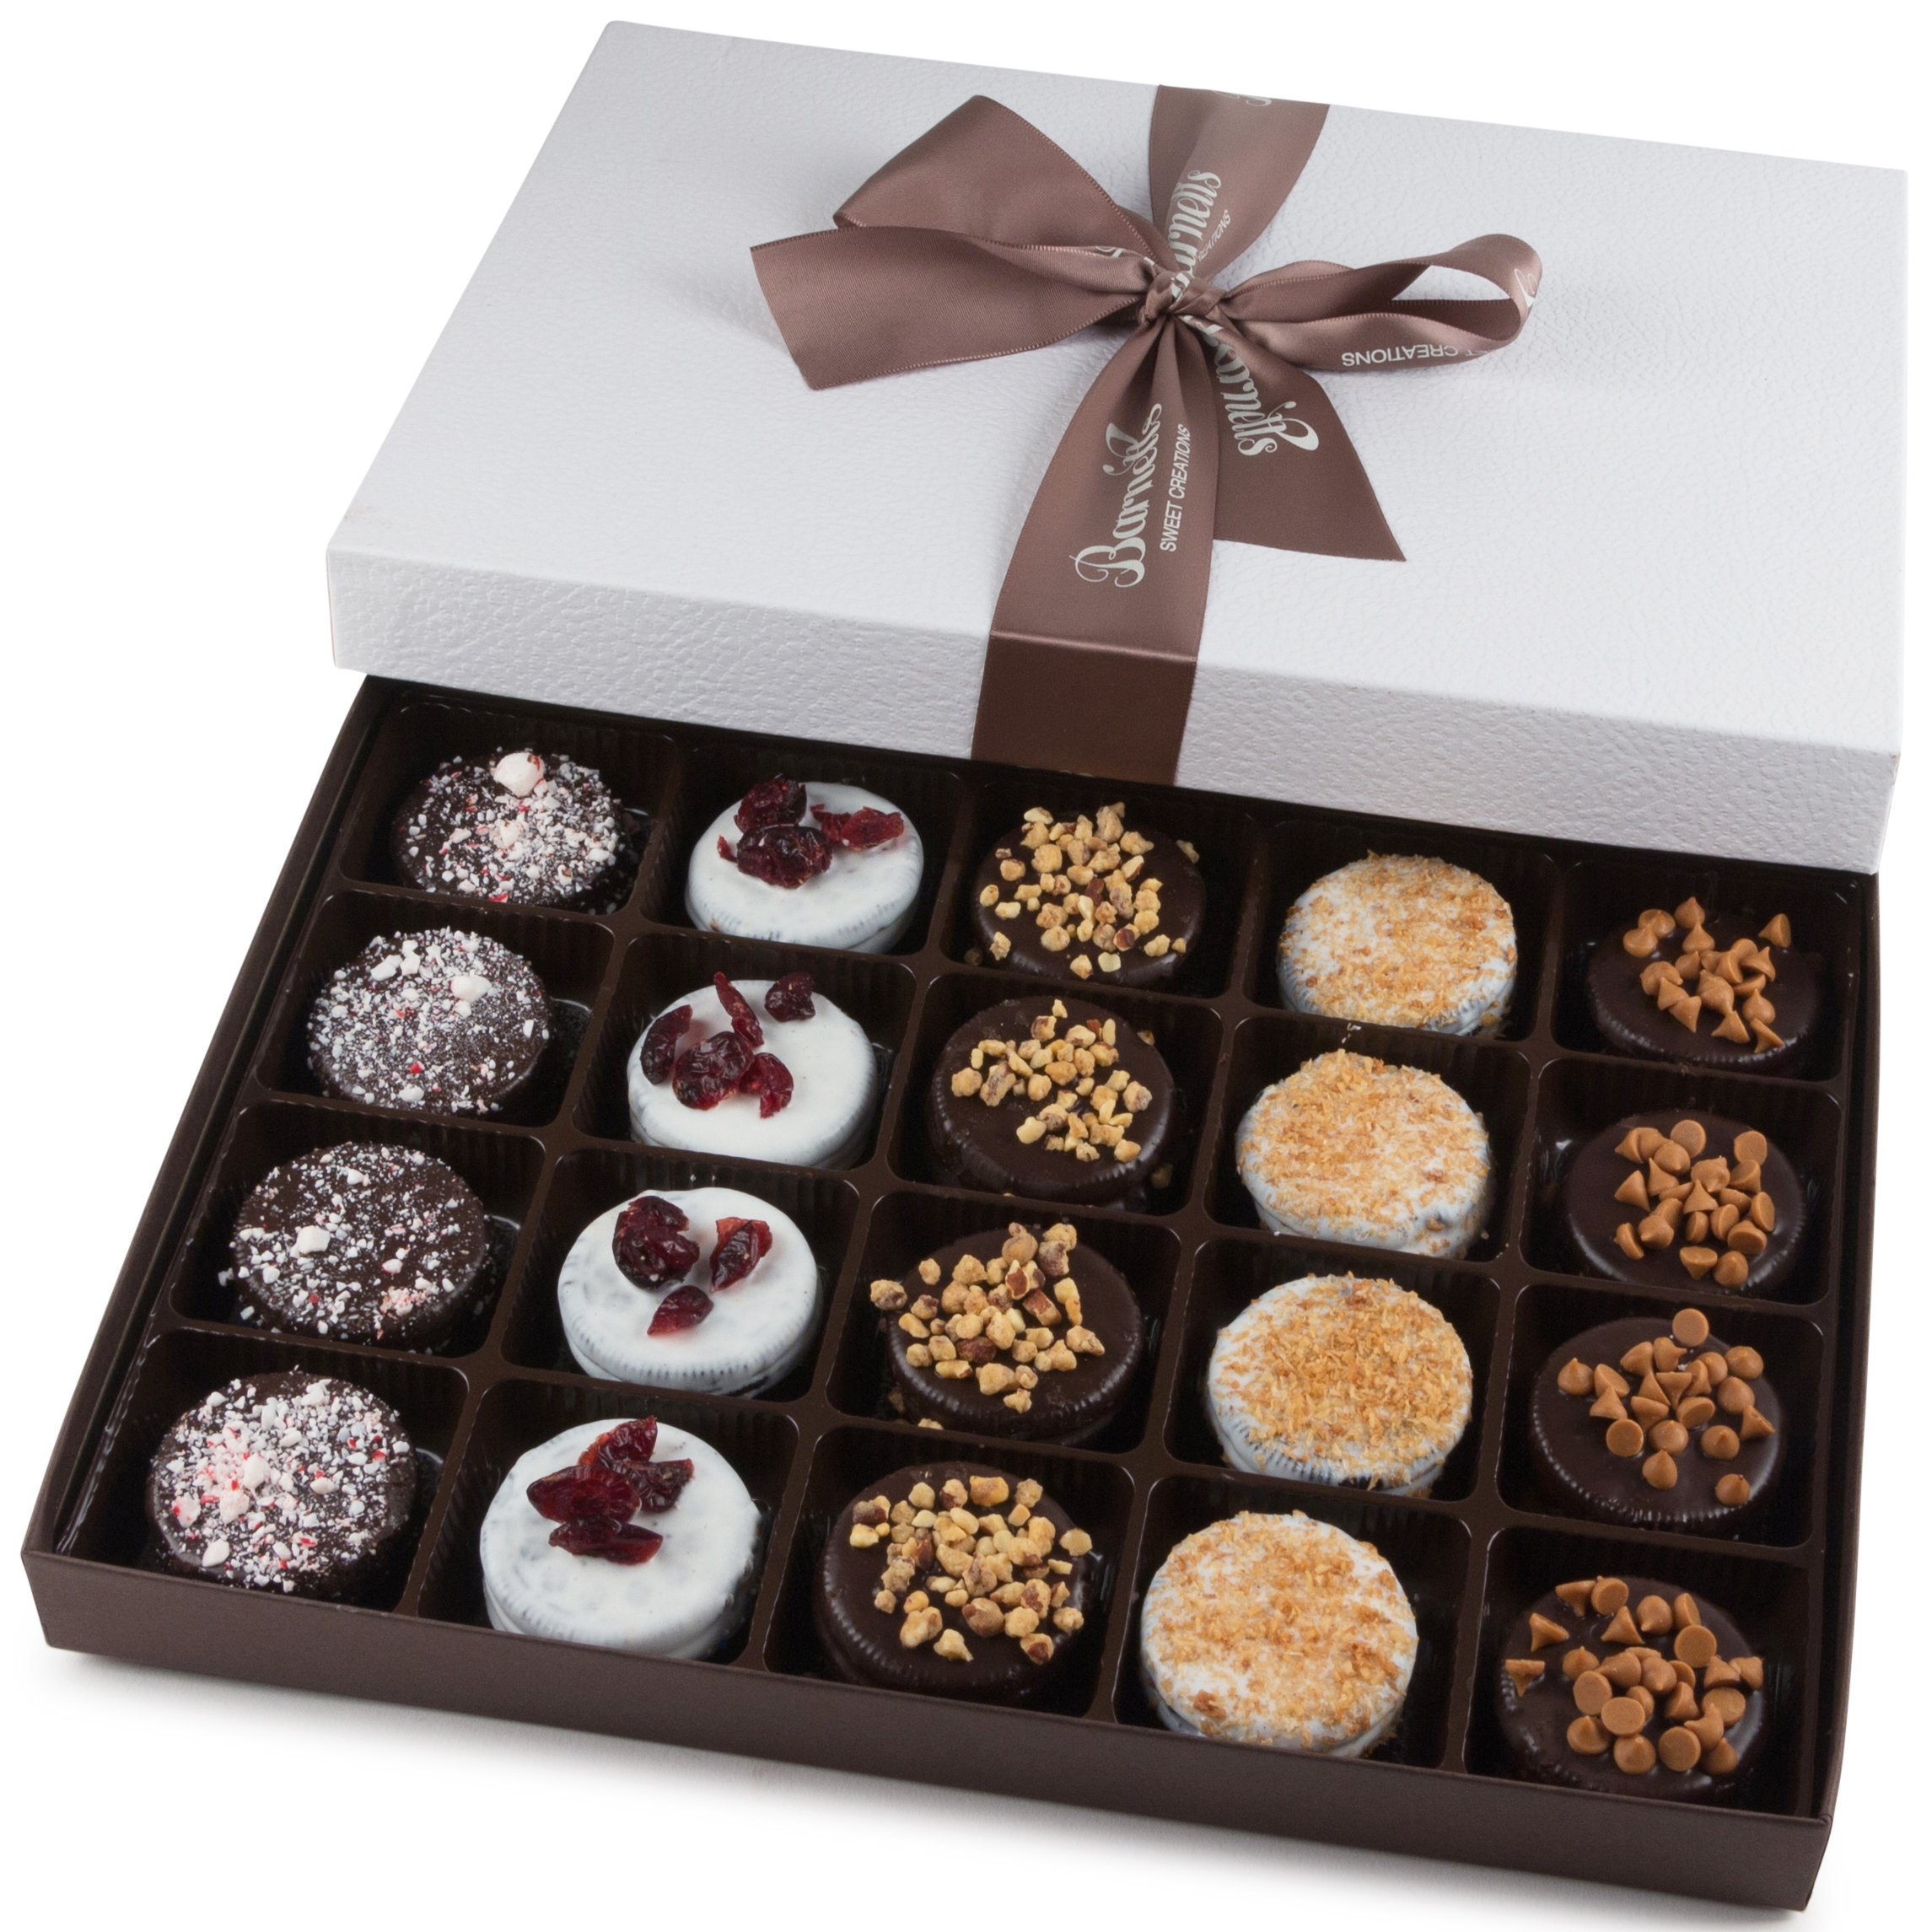 Barnett's Holiday Gift Basket - Elegant Chocolate Covered Sandwich Cookies Gift Box - Unique Gourmet Food Gifts Idea For Men, Women, Birthday, Corporate, Mothers Day or Valentines Baskets for Her